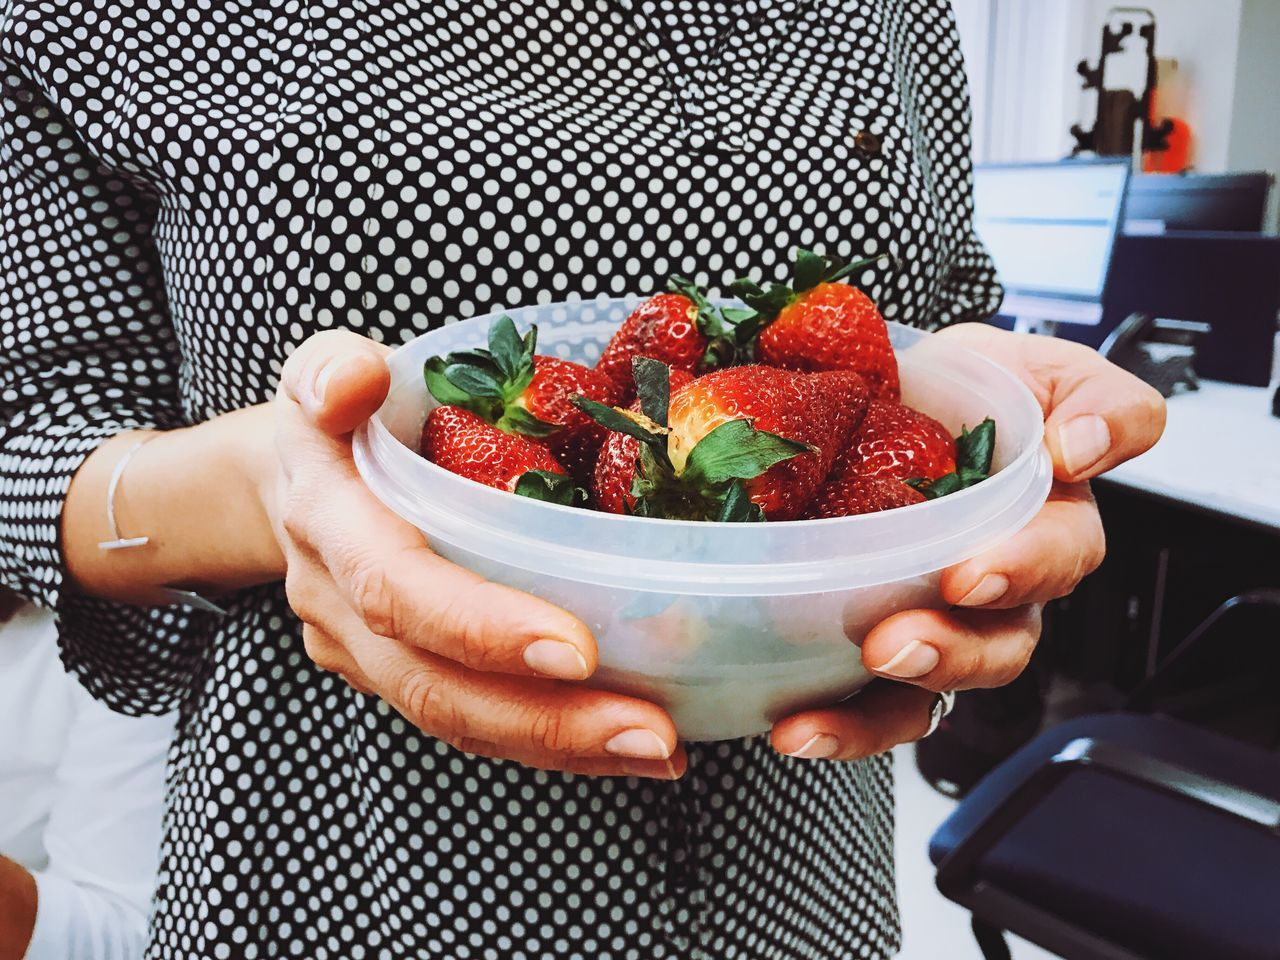 76/365 Midsection Holding Food Human Hand Freshness Healthy Eating Fruit Women One Person Lifestyles Food And Drink Human Body Part Real People Close-up Adult Adults Only People Day Women Around The World